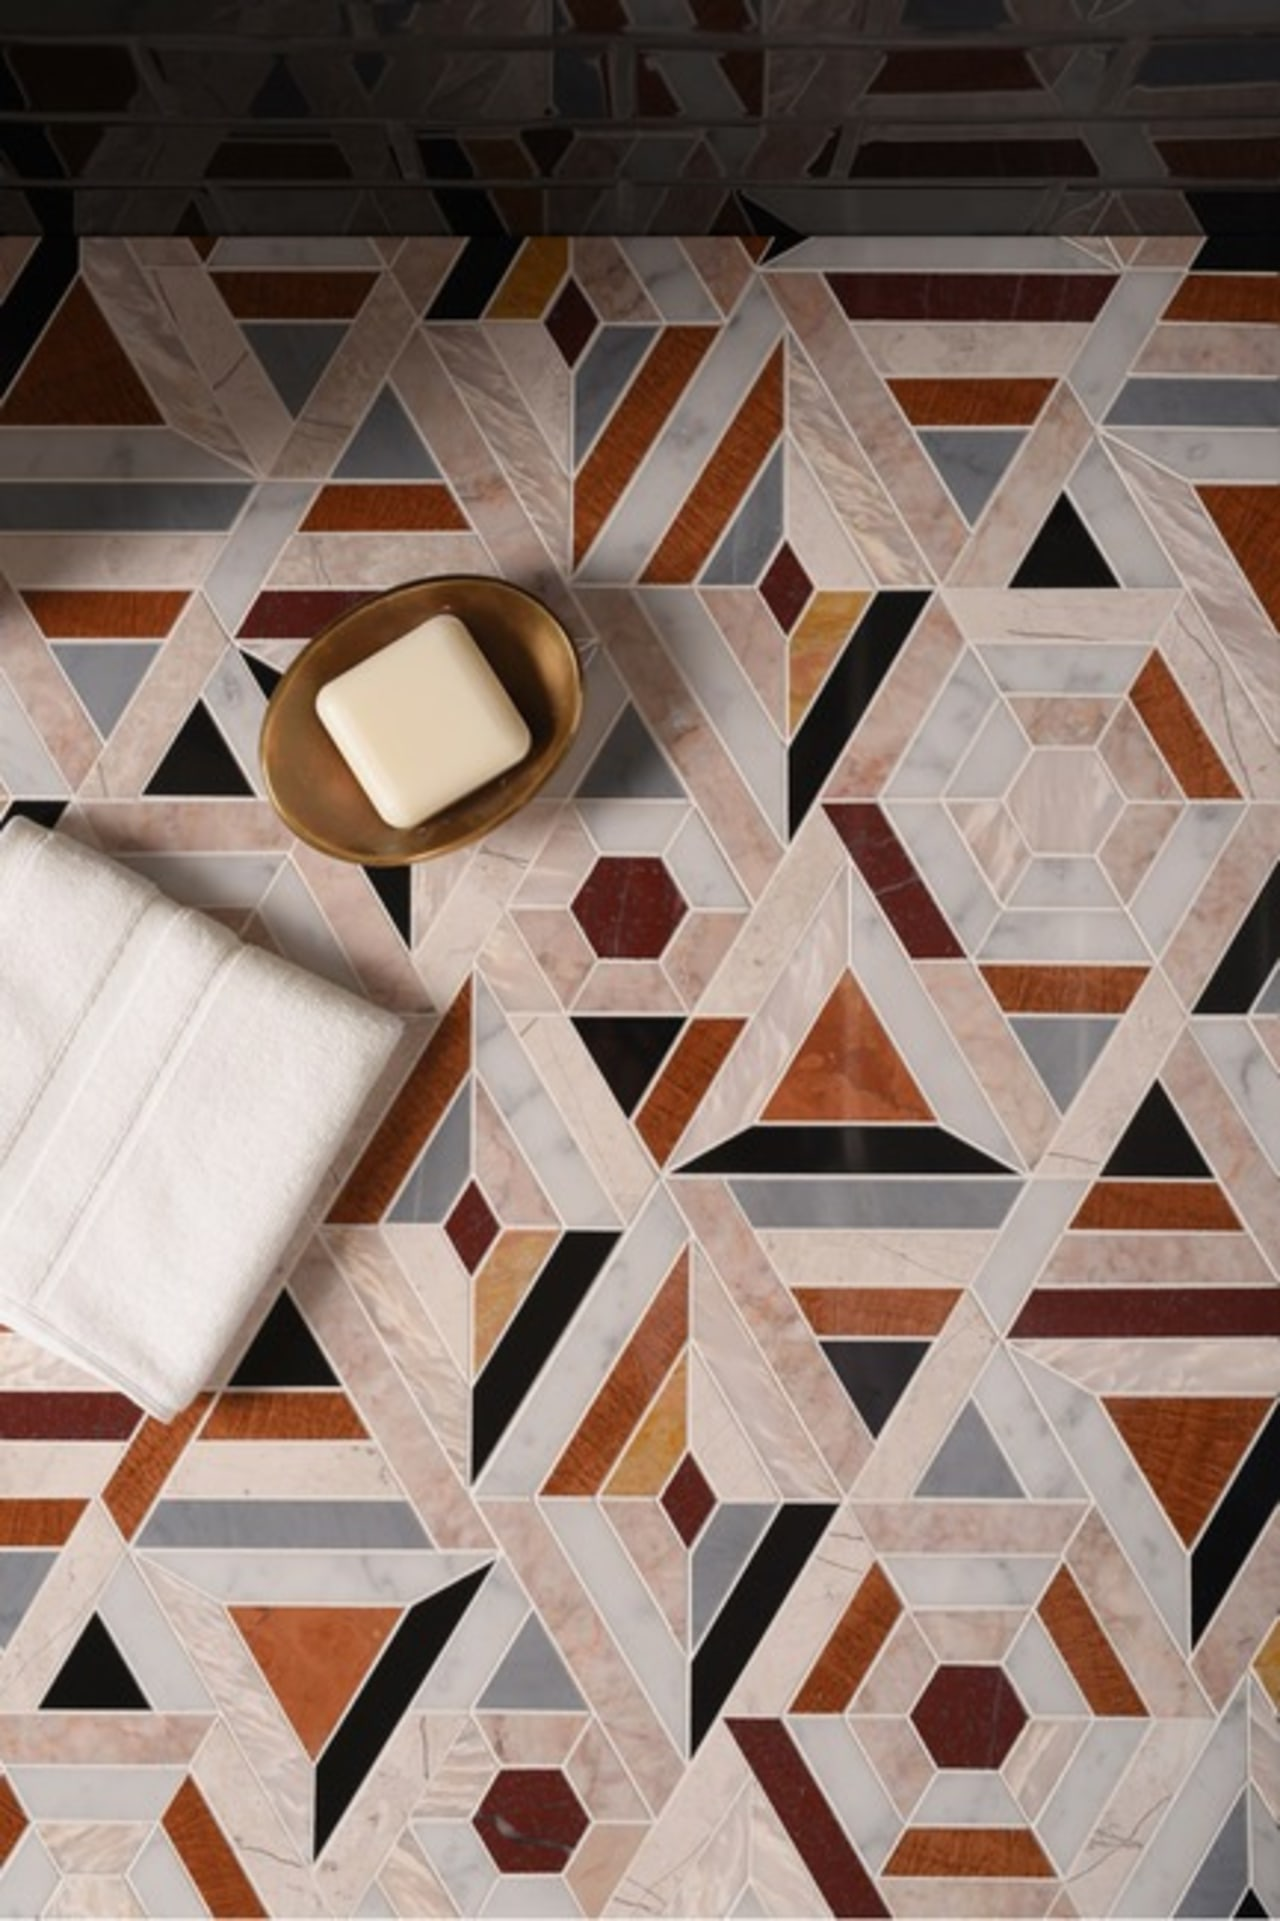 Confectionary design, floor, flooring, hardwood, pattern, square, symmetry, tile, wall, wood, gray